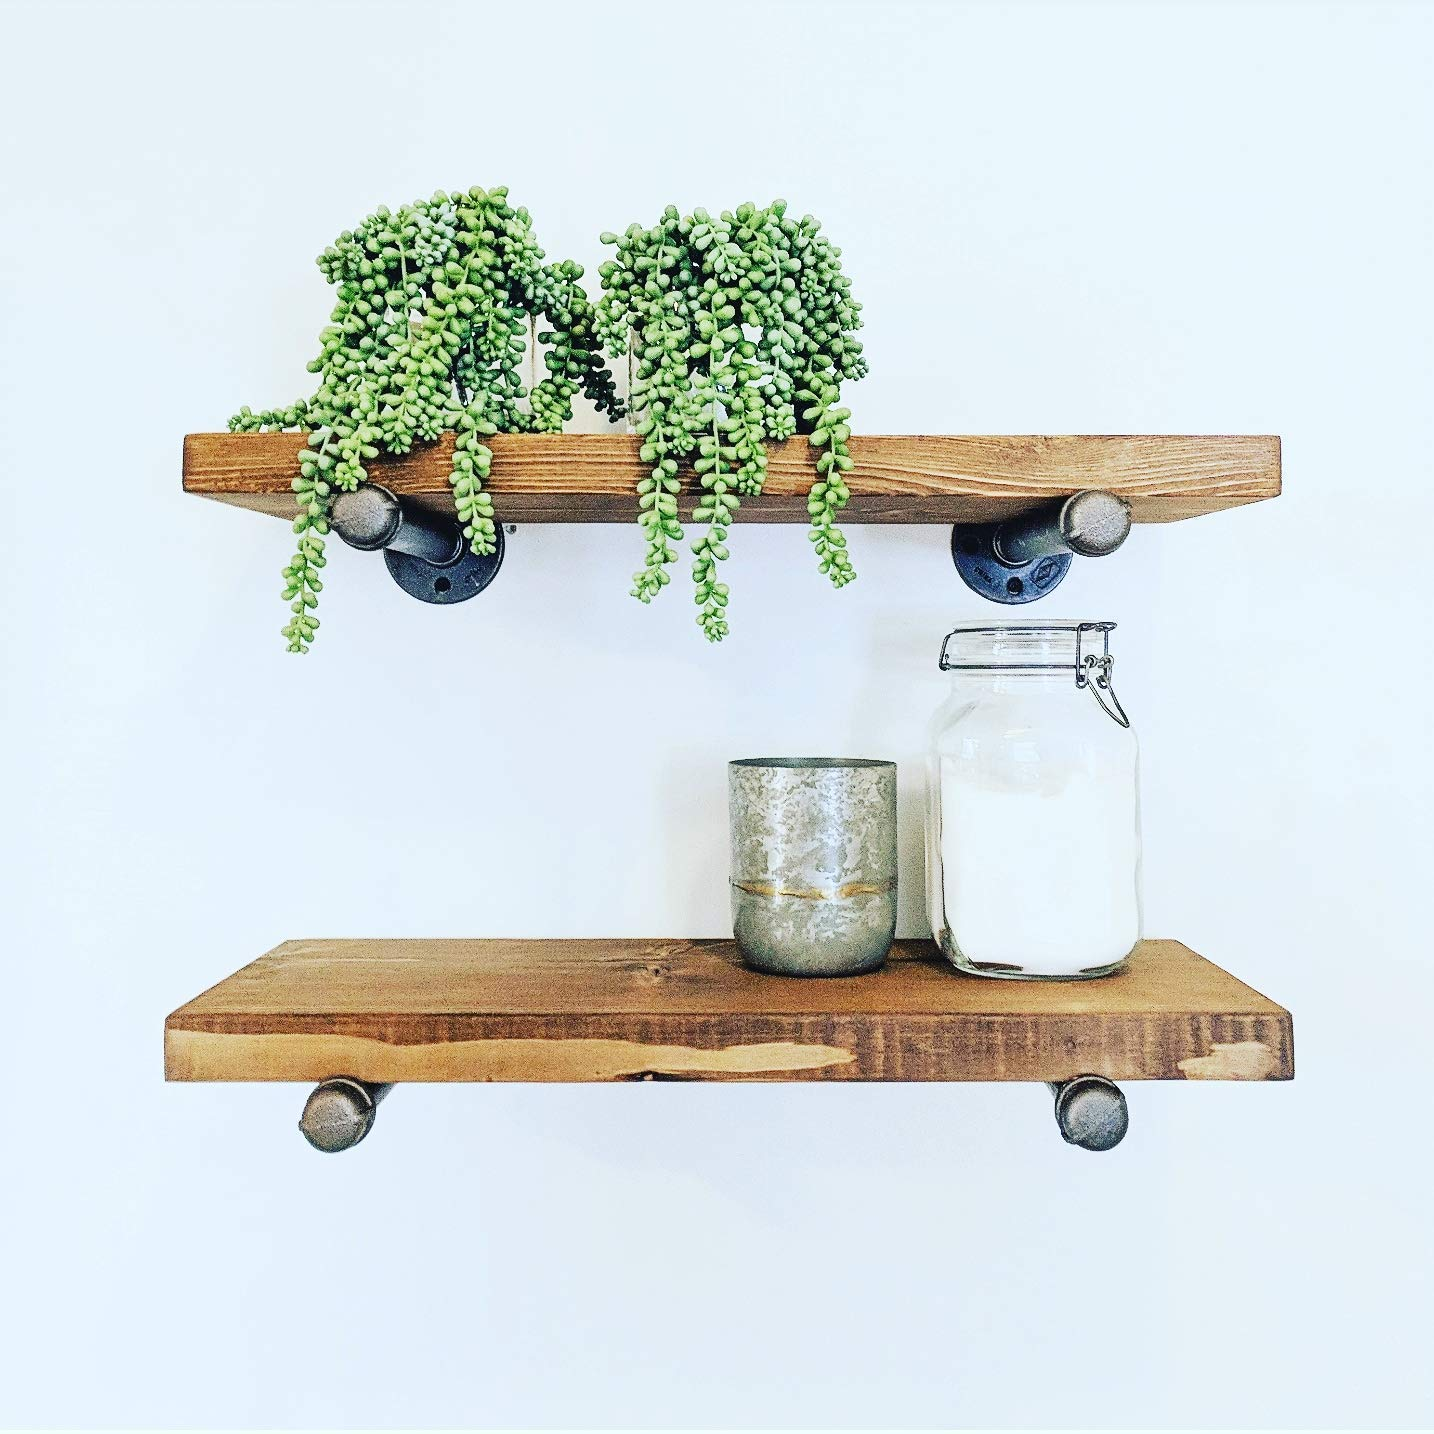 industrial floating shelves inches set inch deep shelf rustic canadian tire closet system high unit pine fireplace mantel prepac sonoma furniture kitchen brackets garage wall